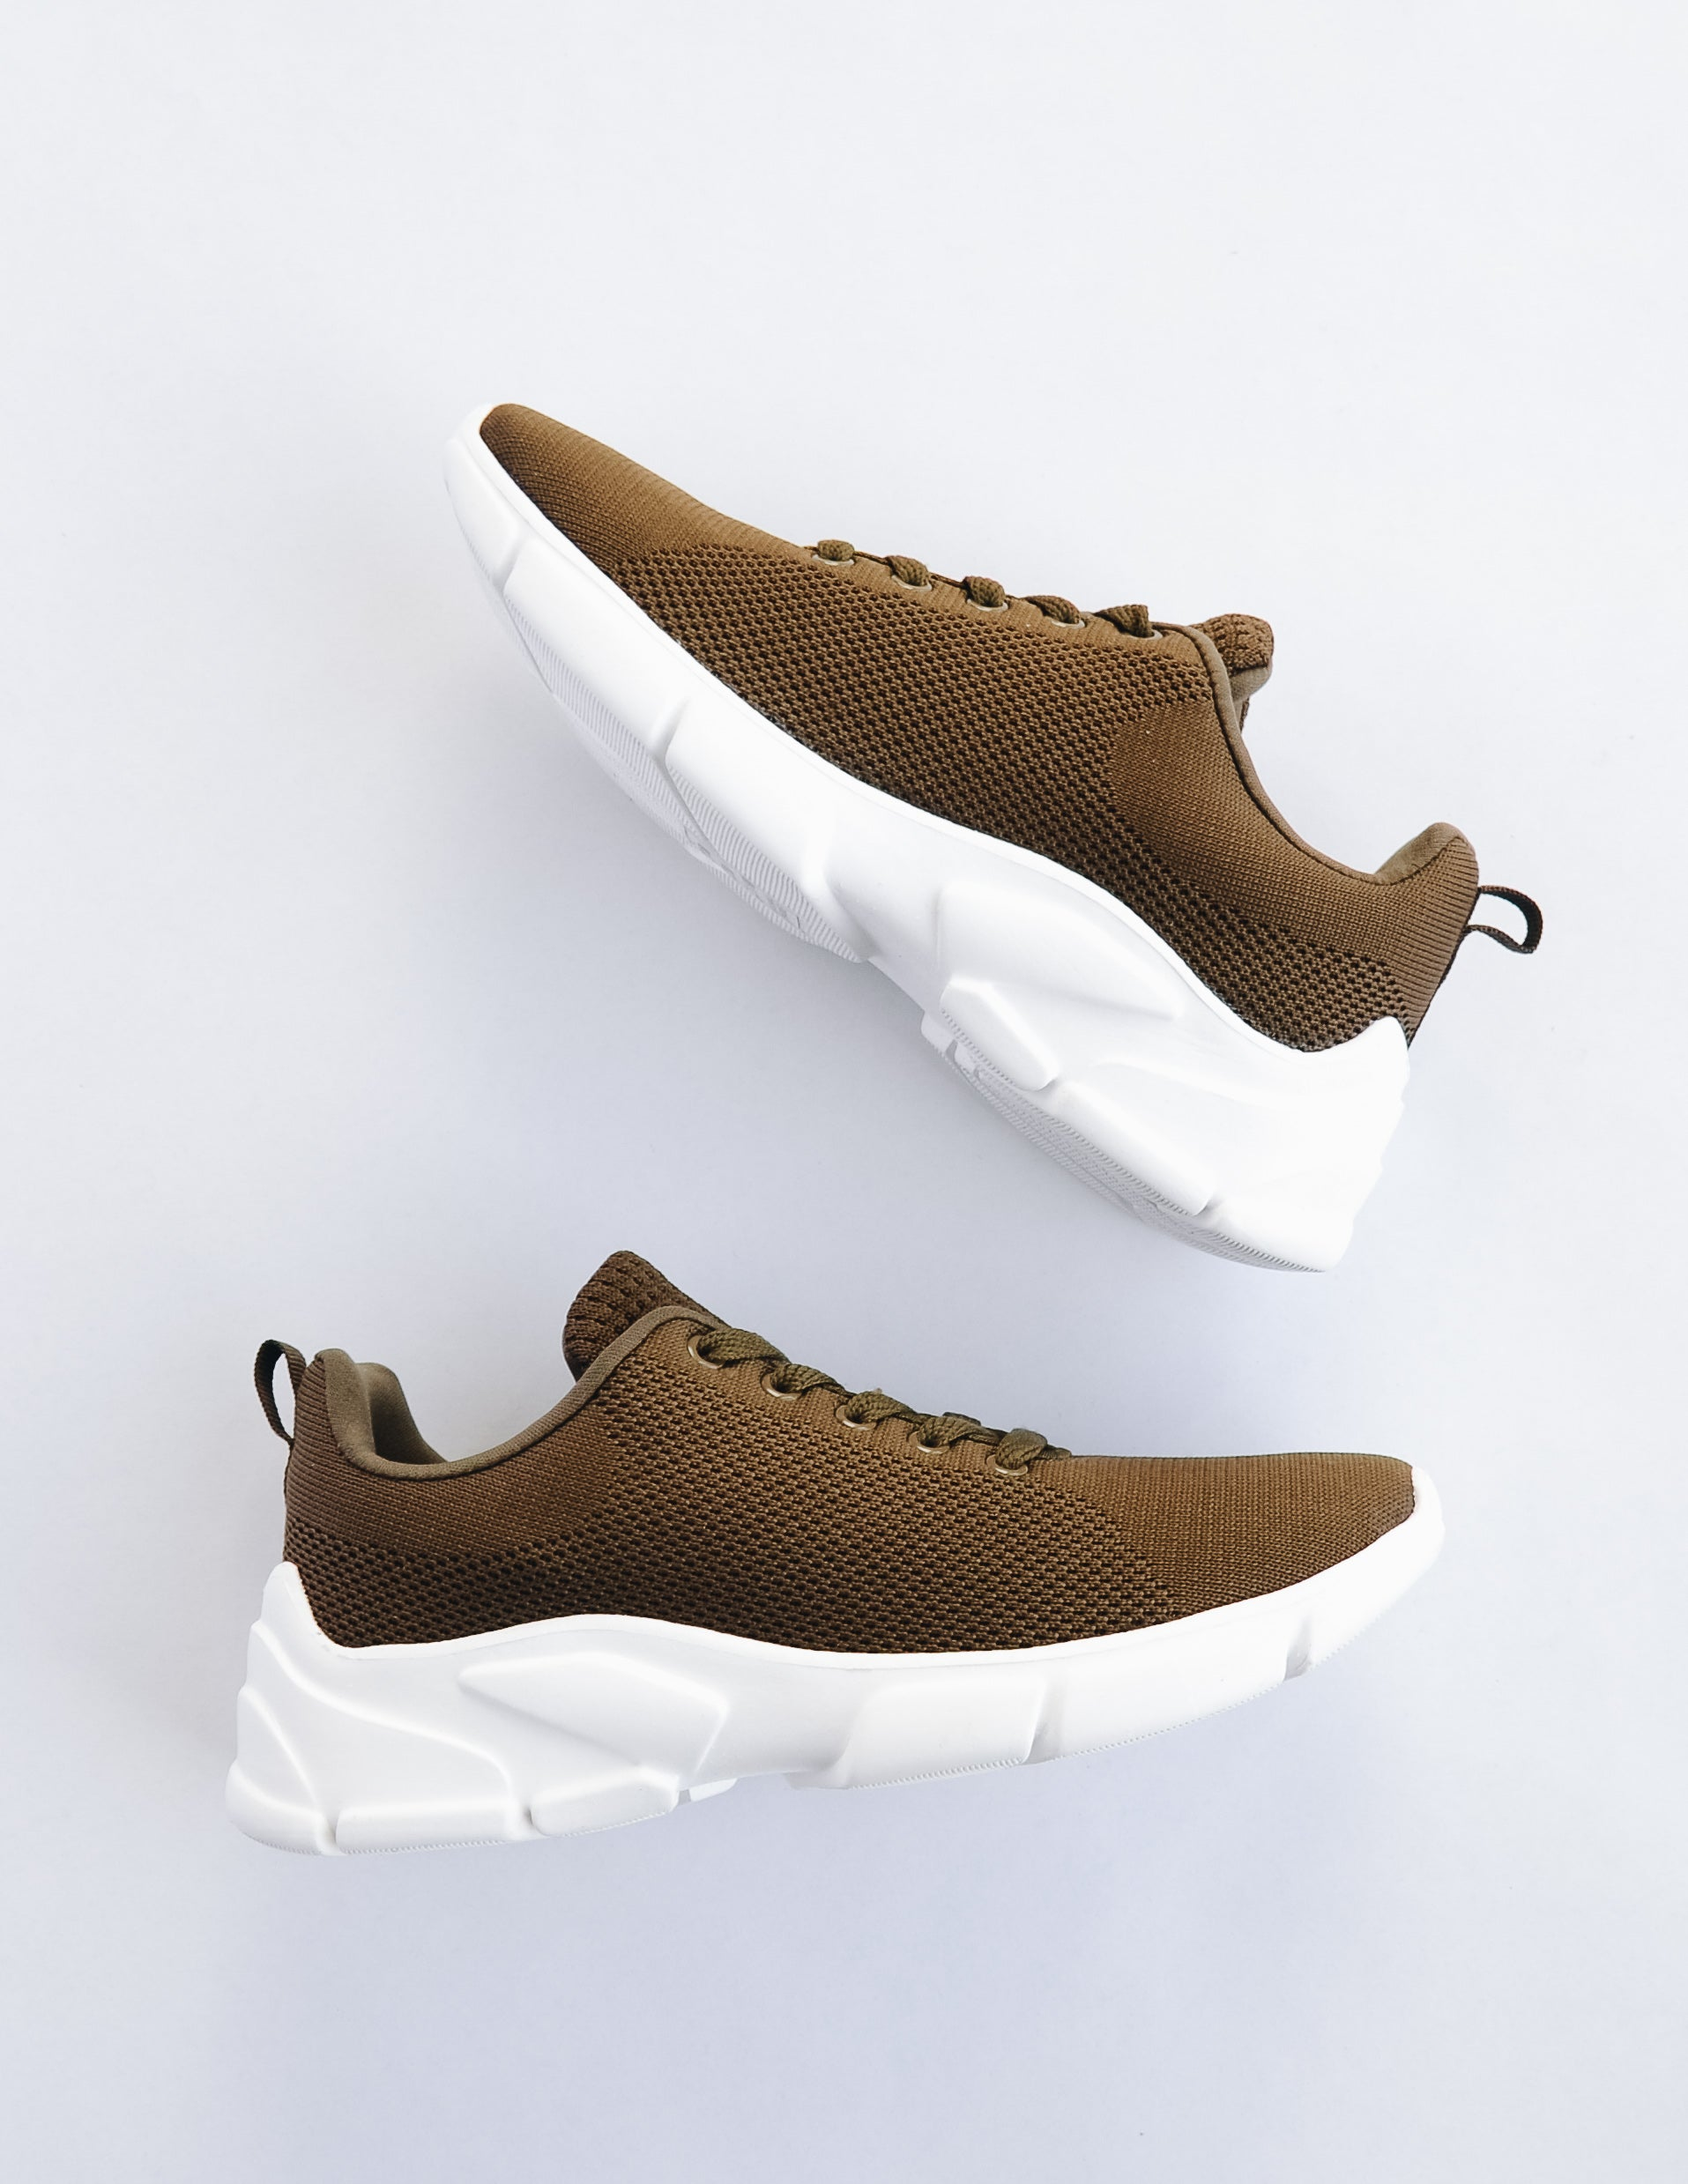 FAME GAME SNEAKER - Khaki - Elle Bleu Shoe Boutique